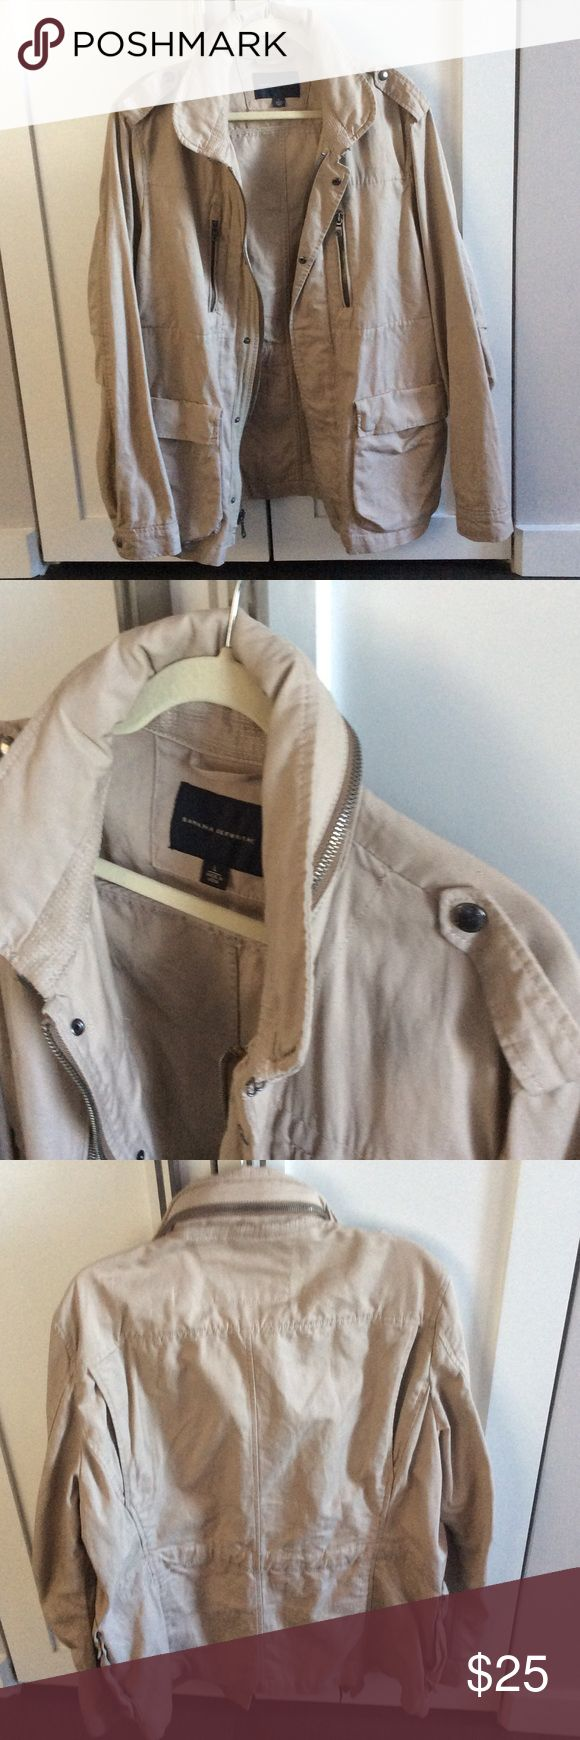 Men's safari tan jacket Banana Republic, size L, tan color, shell: 63%cotton 37% linen. Great condition, no stain or rips perfect for outdoorsy man. There is a good folded into the collar. Banana Republic Jackets & Coats Military & Field